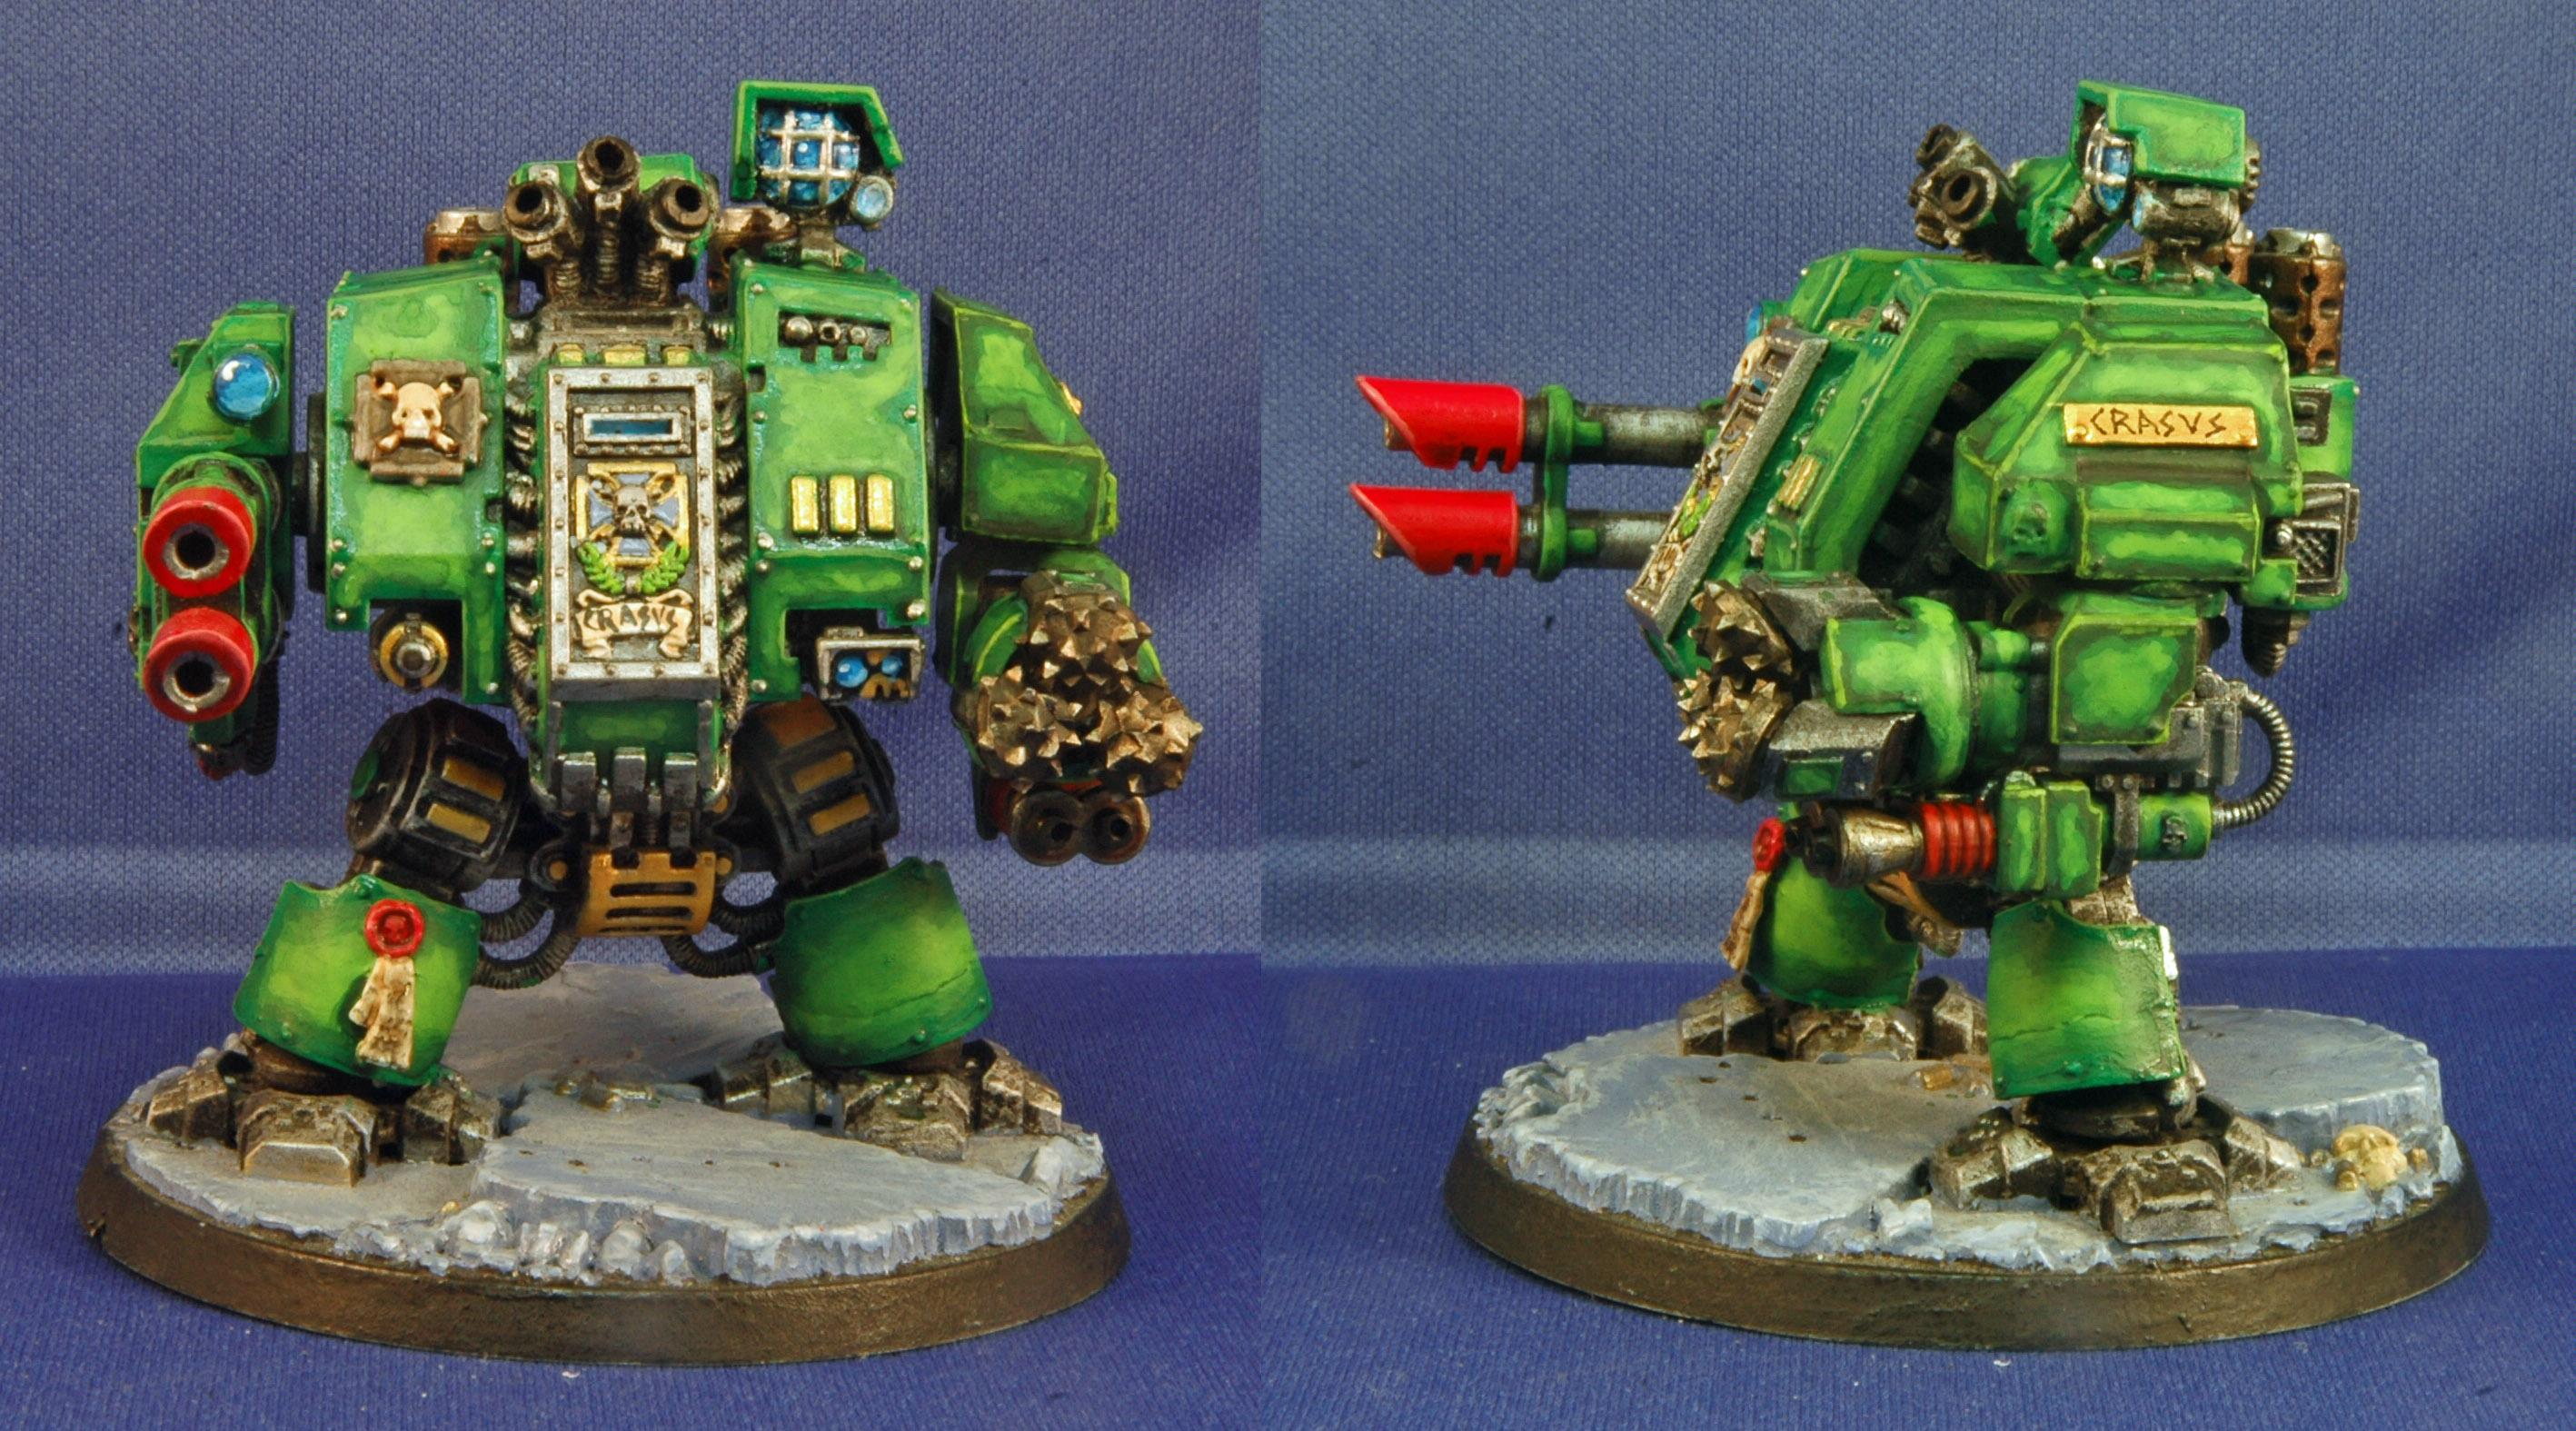 Dreadnought, Mantis Warriors, Space Marines, Warhammer 40,000